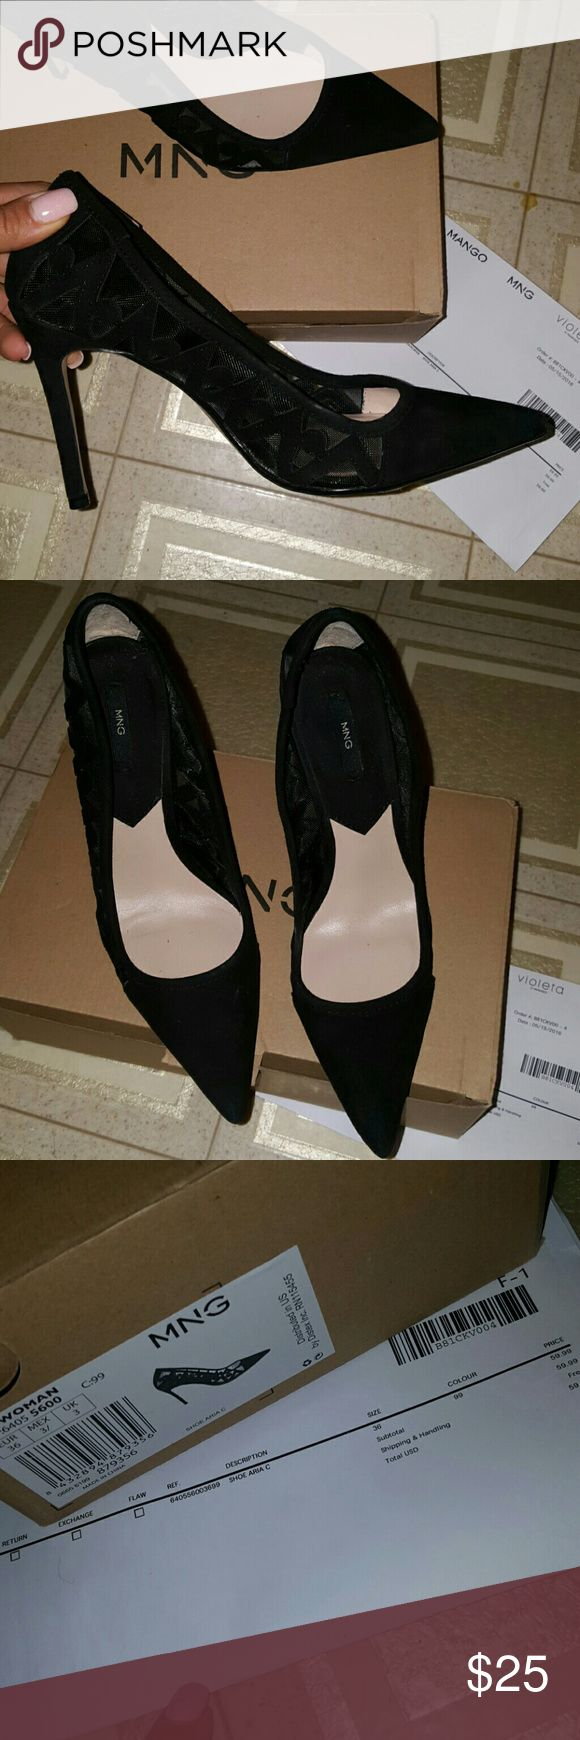 MANGO heels Black Suede Mango Heels Size 6, fits 6.5 and 7. Perfect condition. Worn once. With box and receipt Mango Shoes Heels